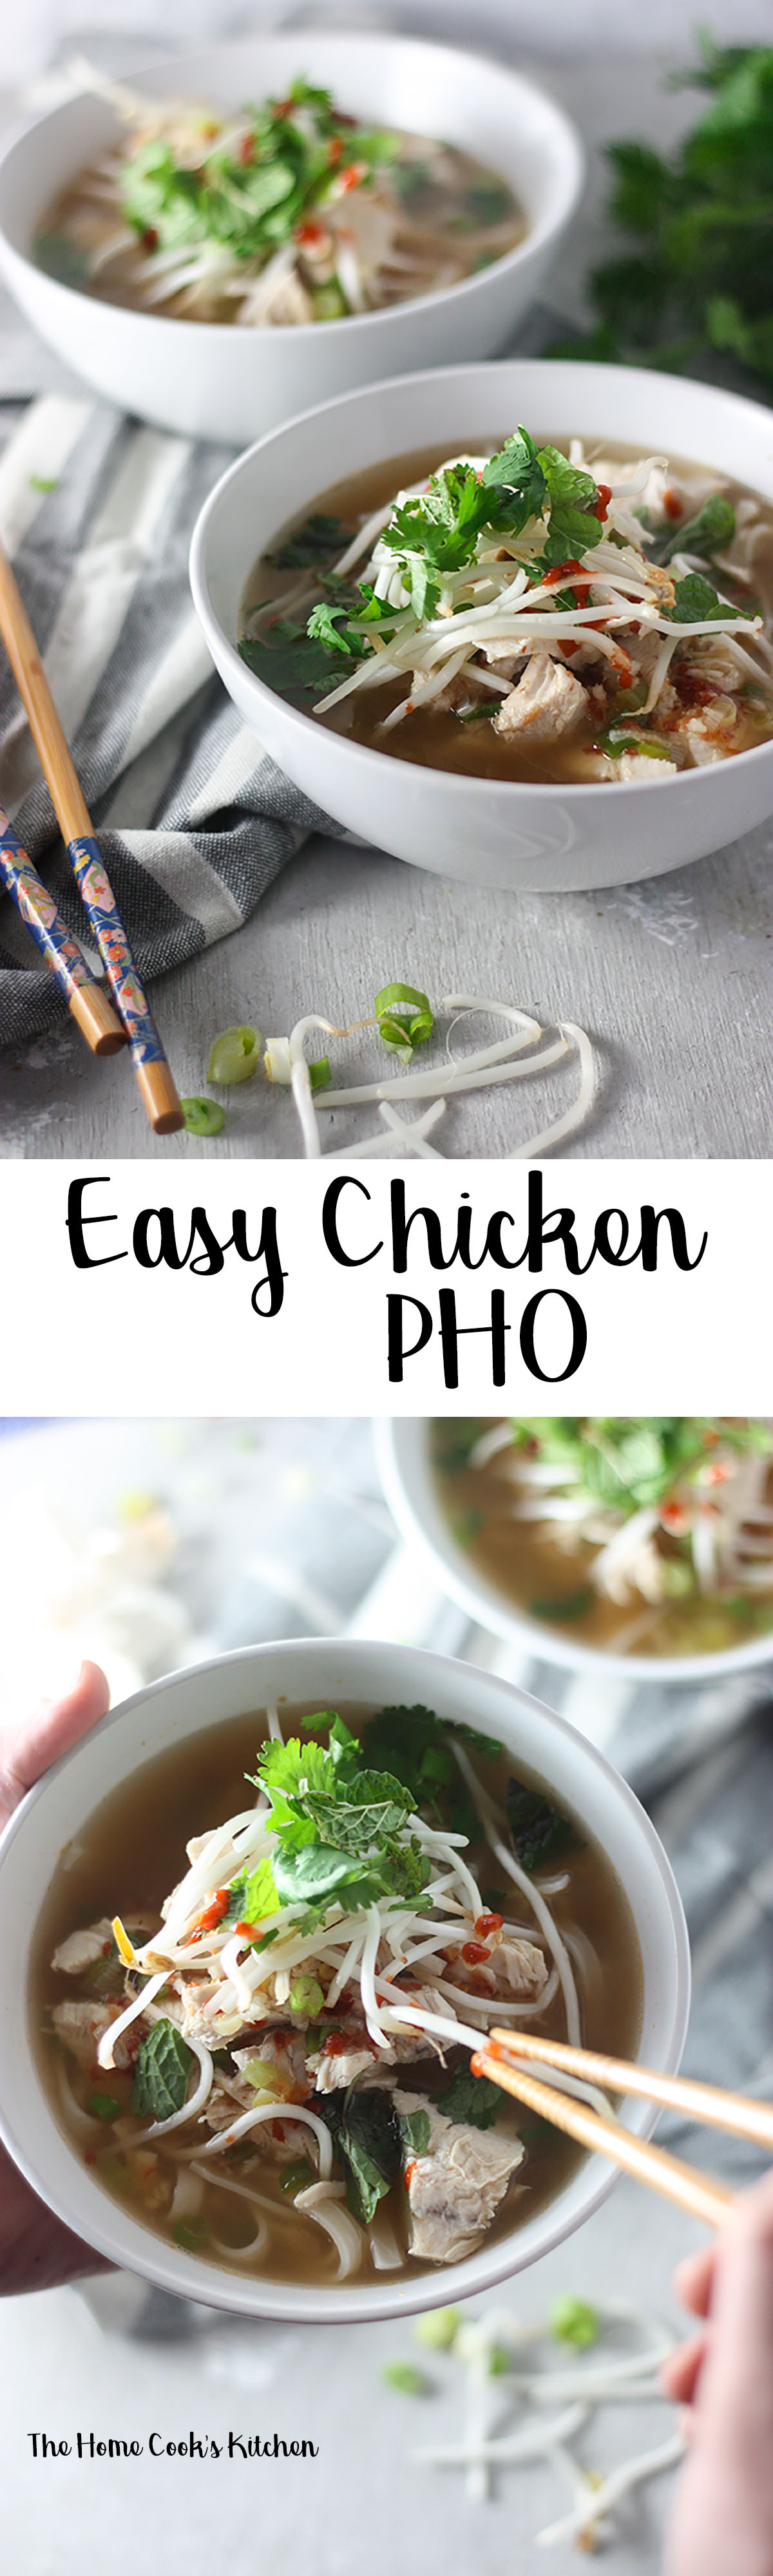 Pin for later easy chicken pho www.thehomecookskitchen.com #weeknightmeal #chickenpho